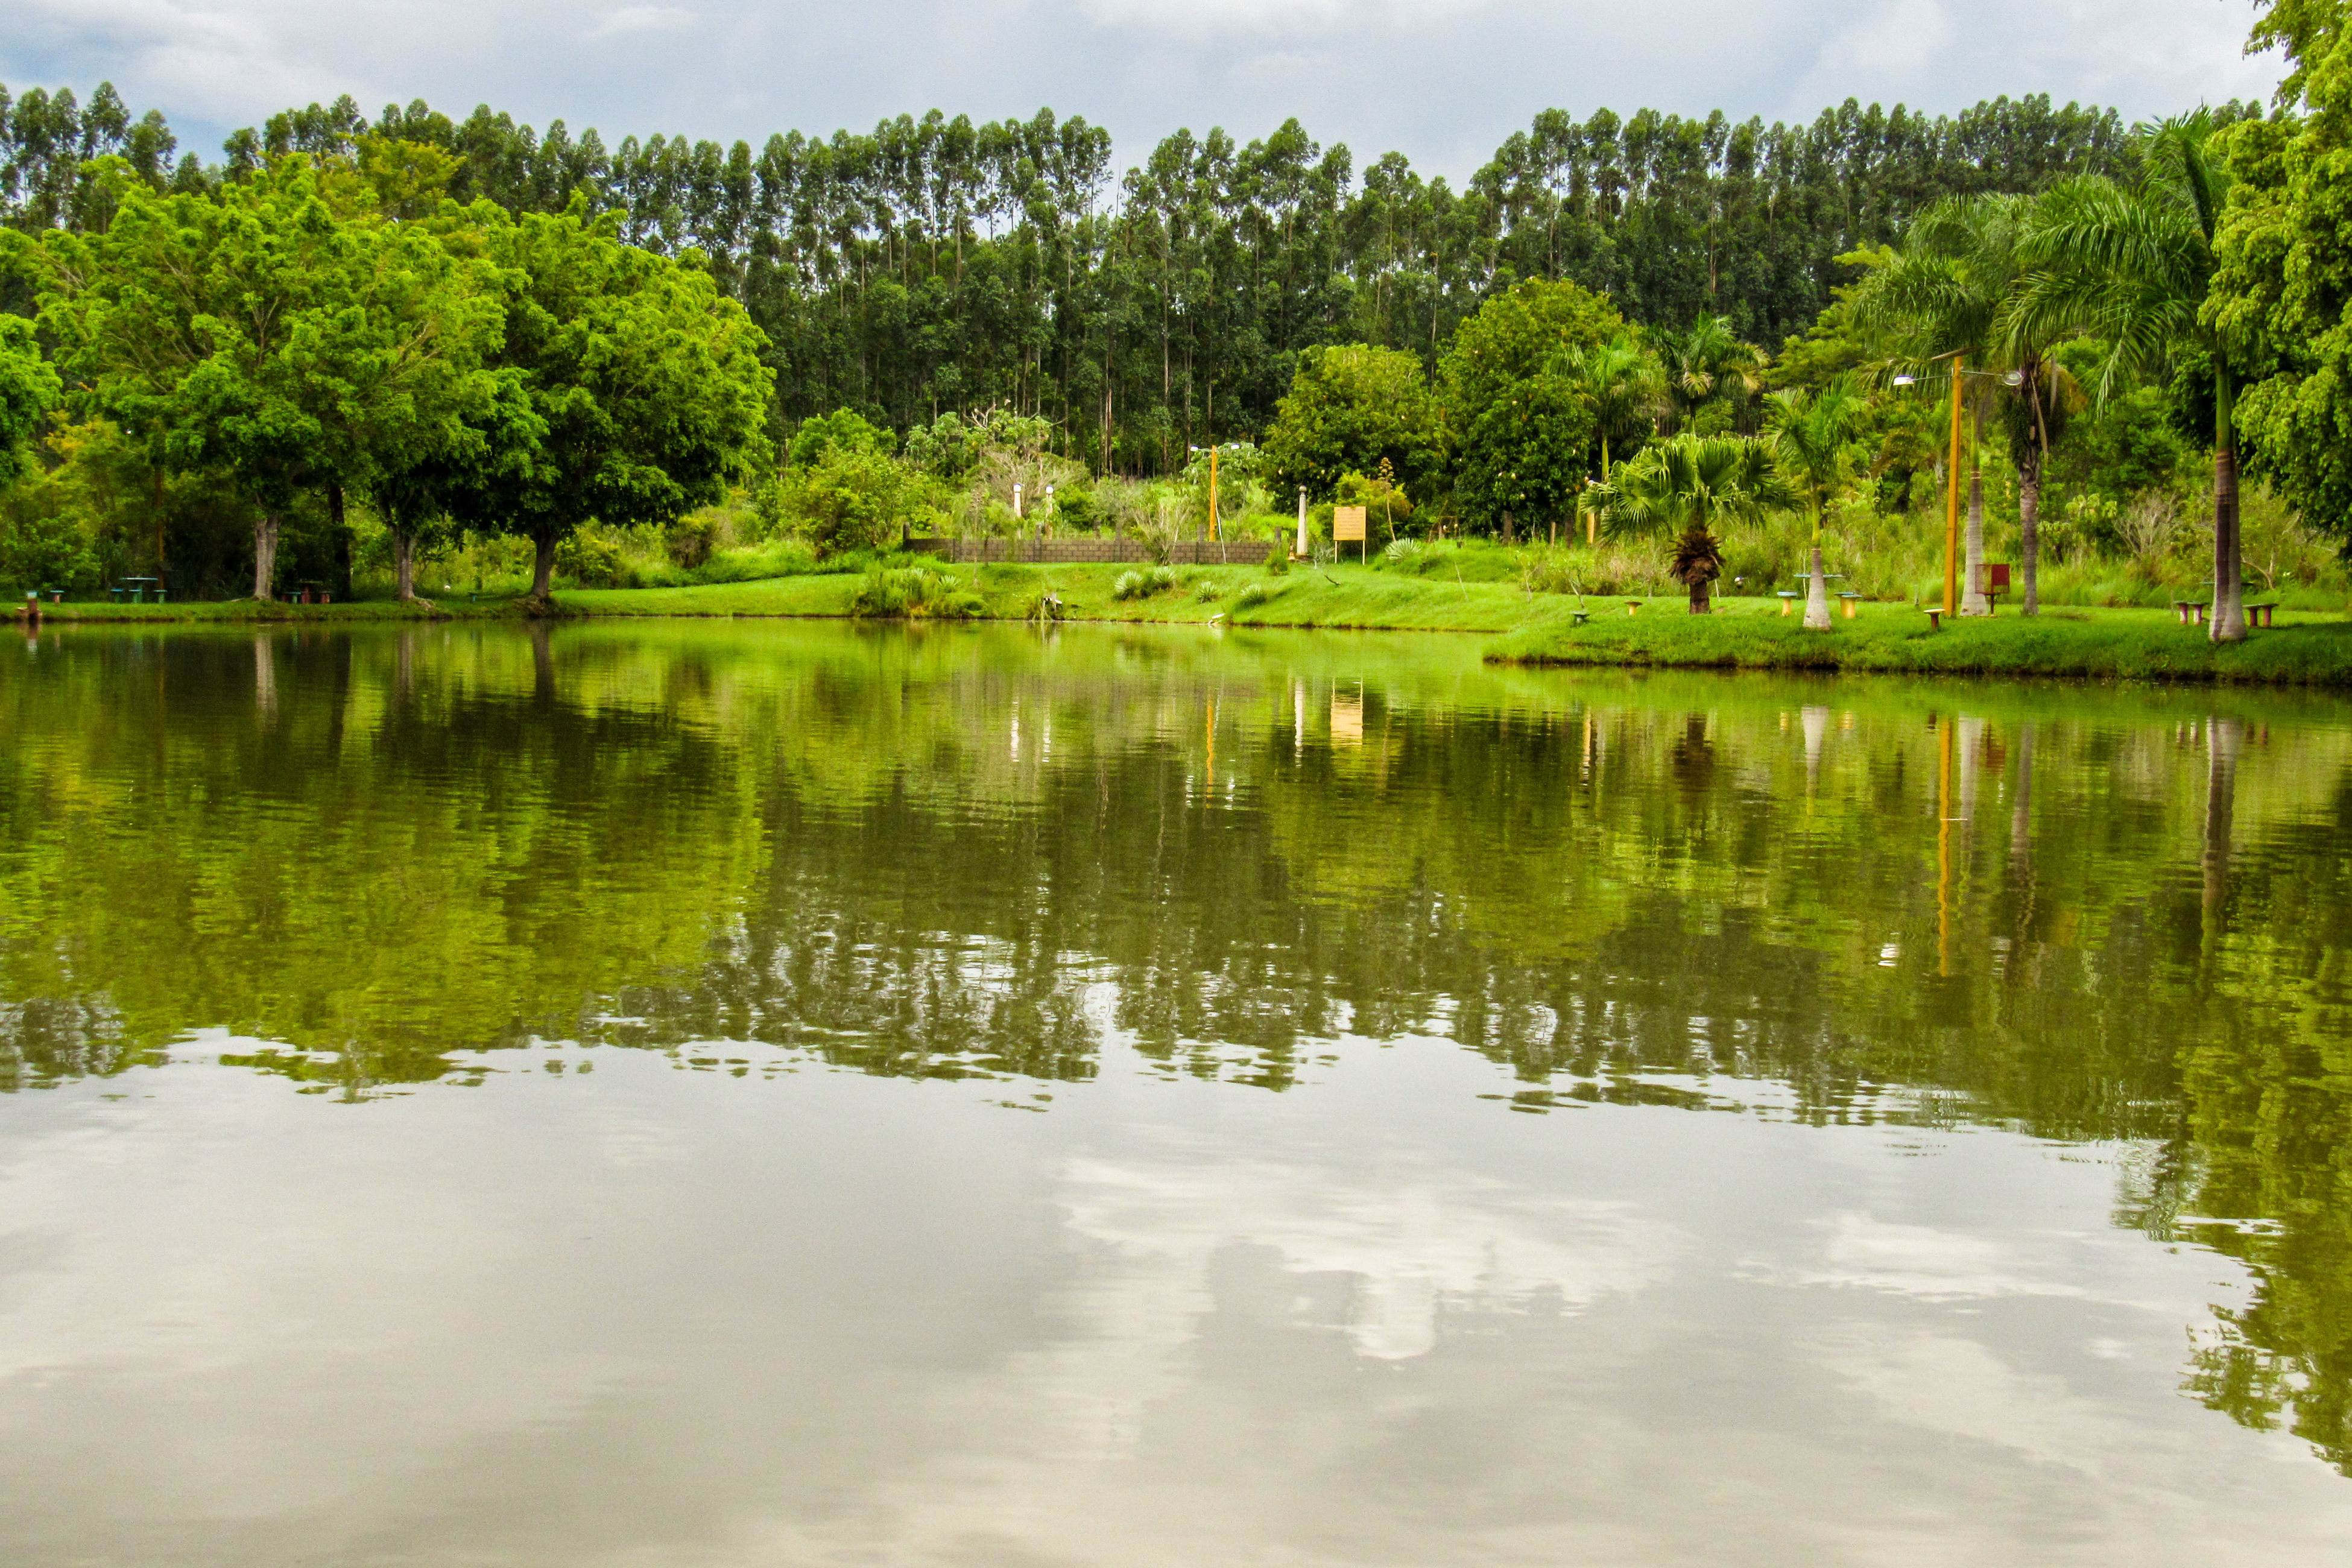 reflection, tree, nature, lake, no people, day, water, outdoors, green color, tranquility, sky, beauty in nature